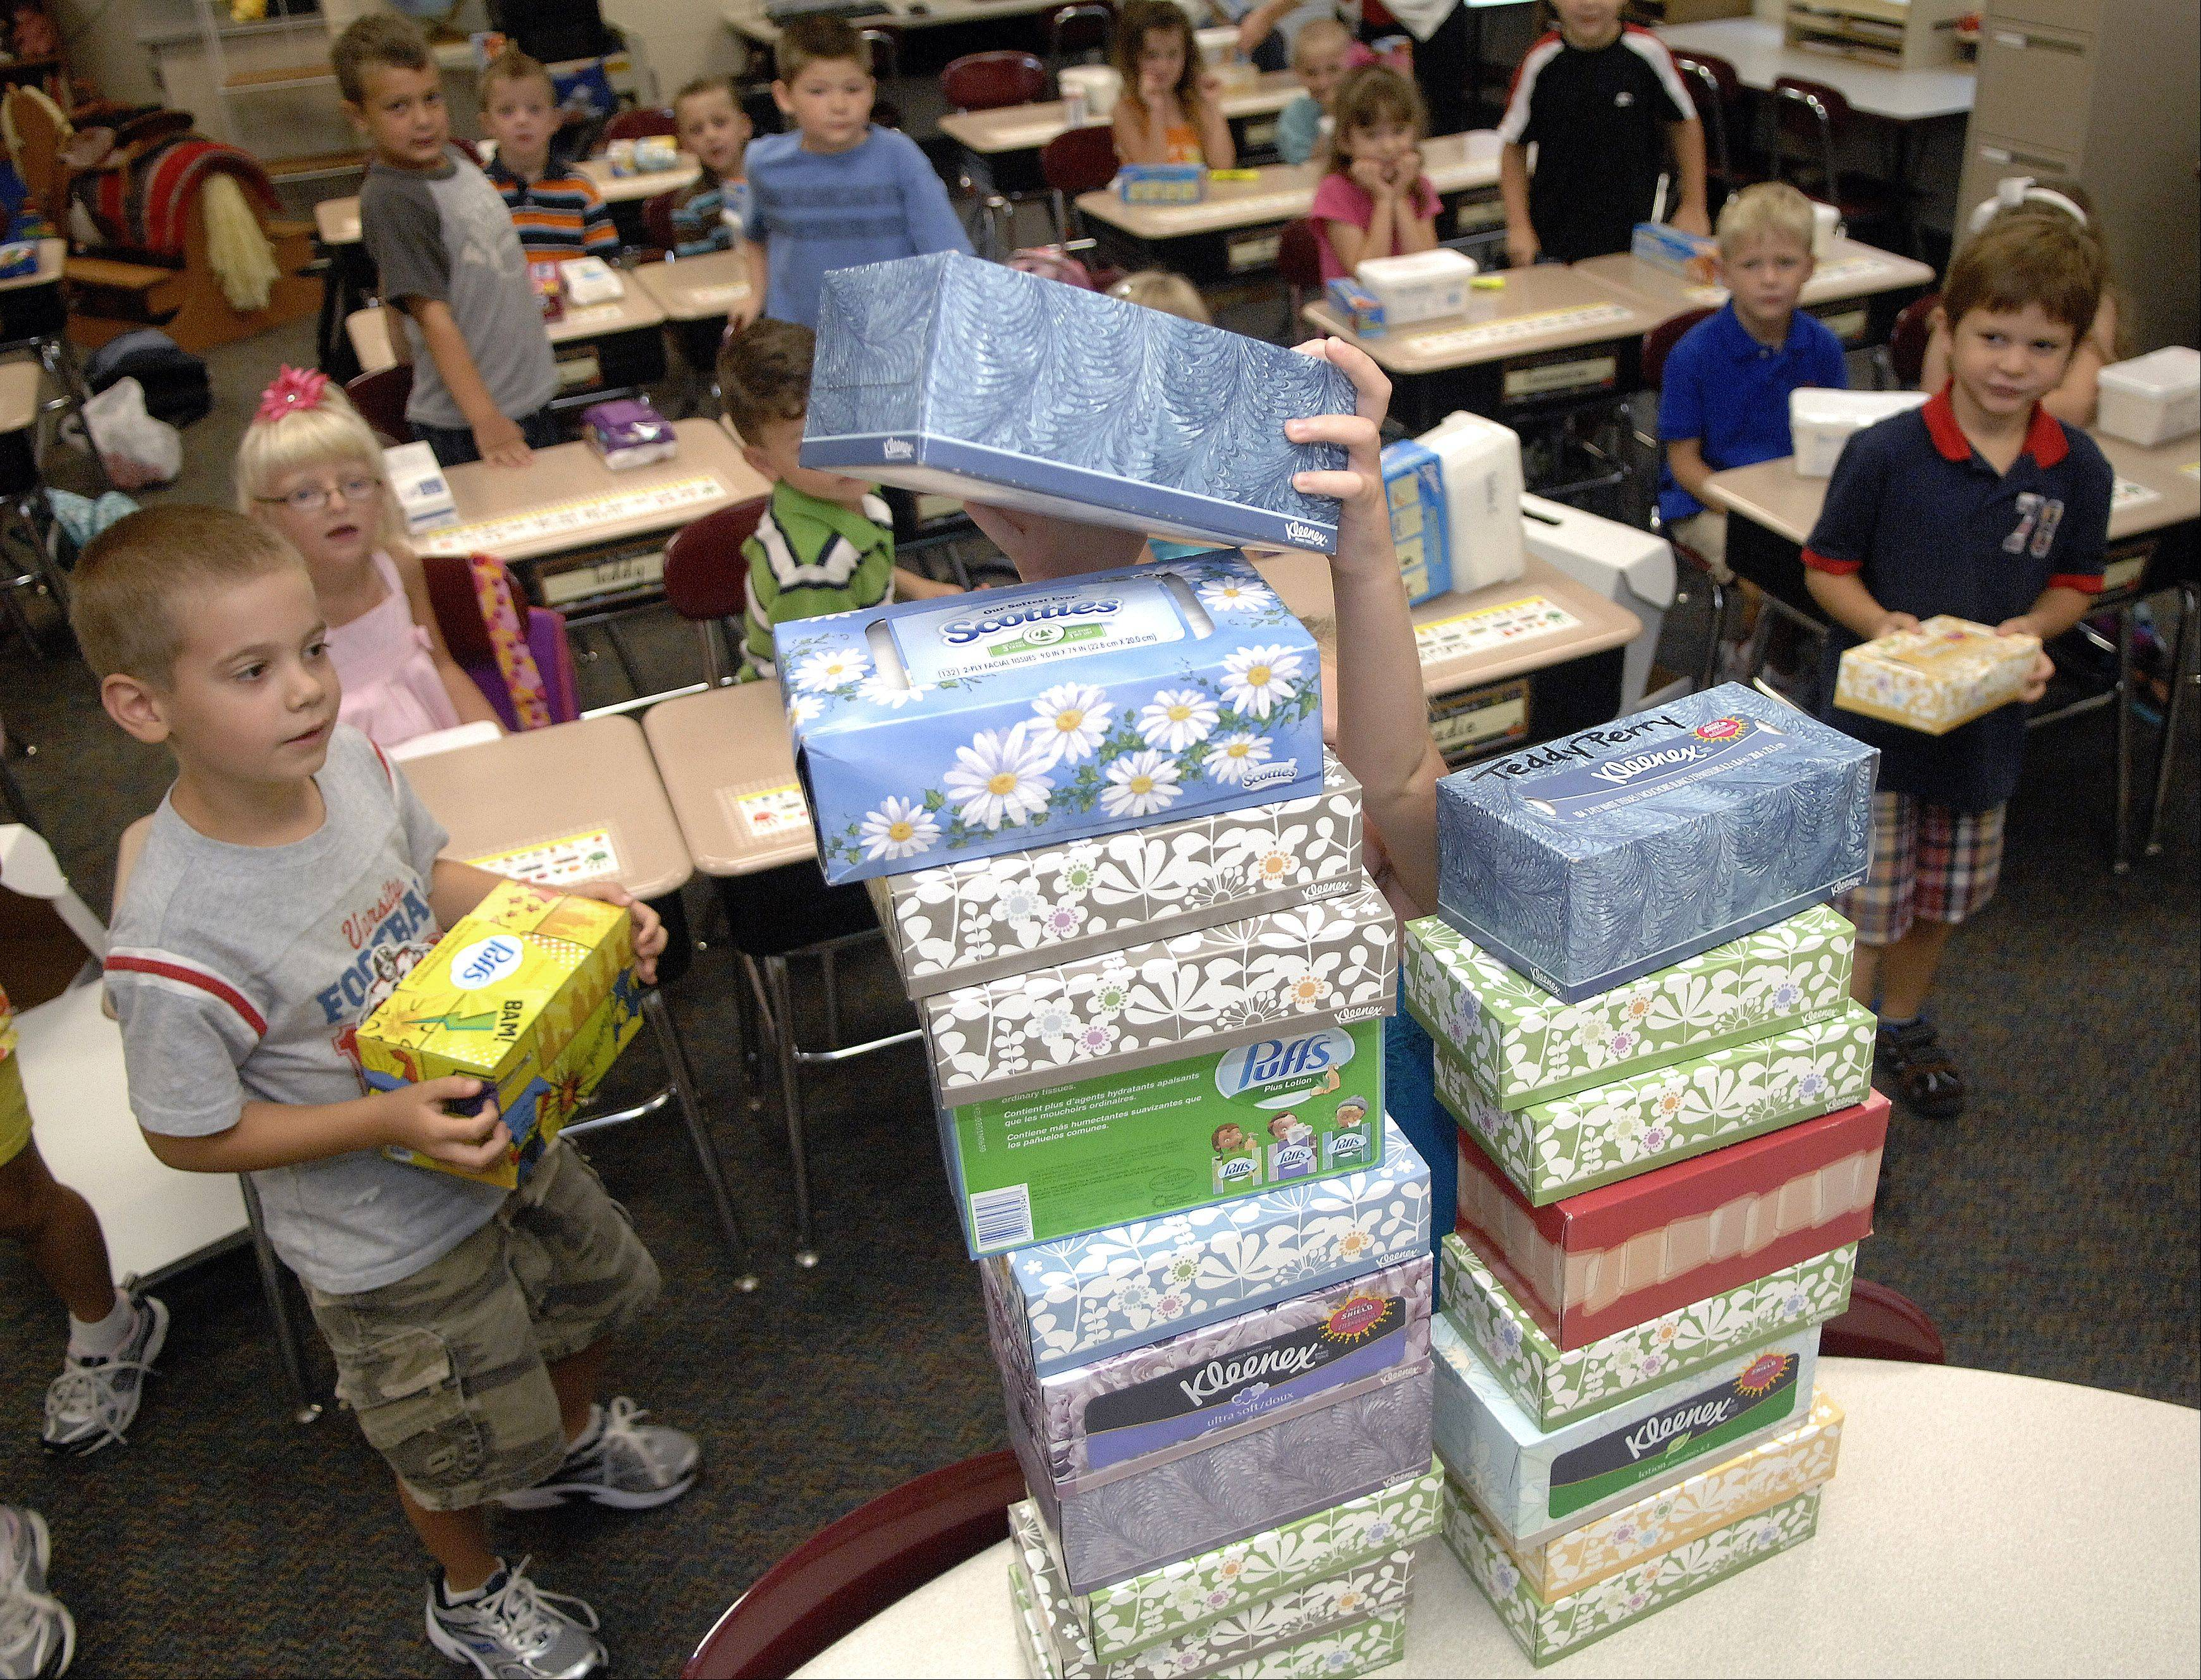 Students in Kim Christensen's first-grade class build a tissue tower with their supplies as a fun activity on their first day of school at Williamsburg Elementary on Wednesday.